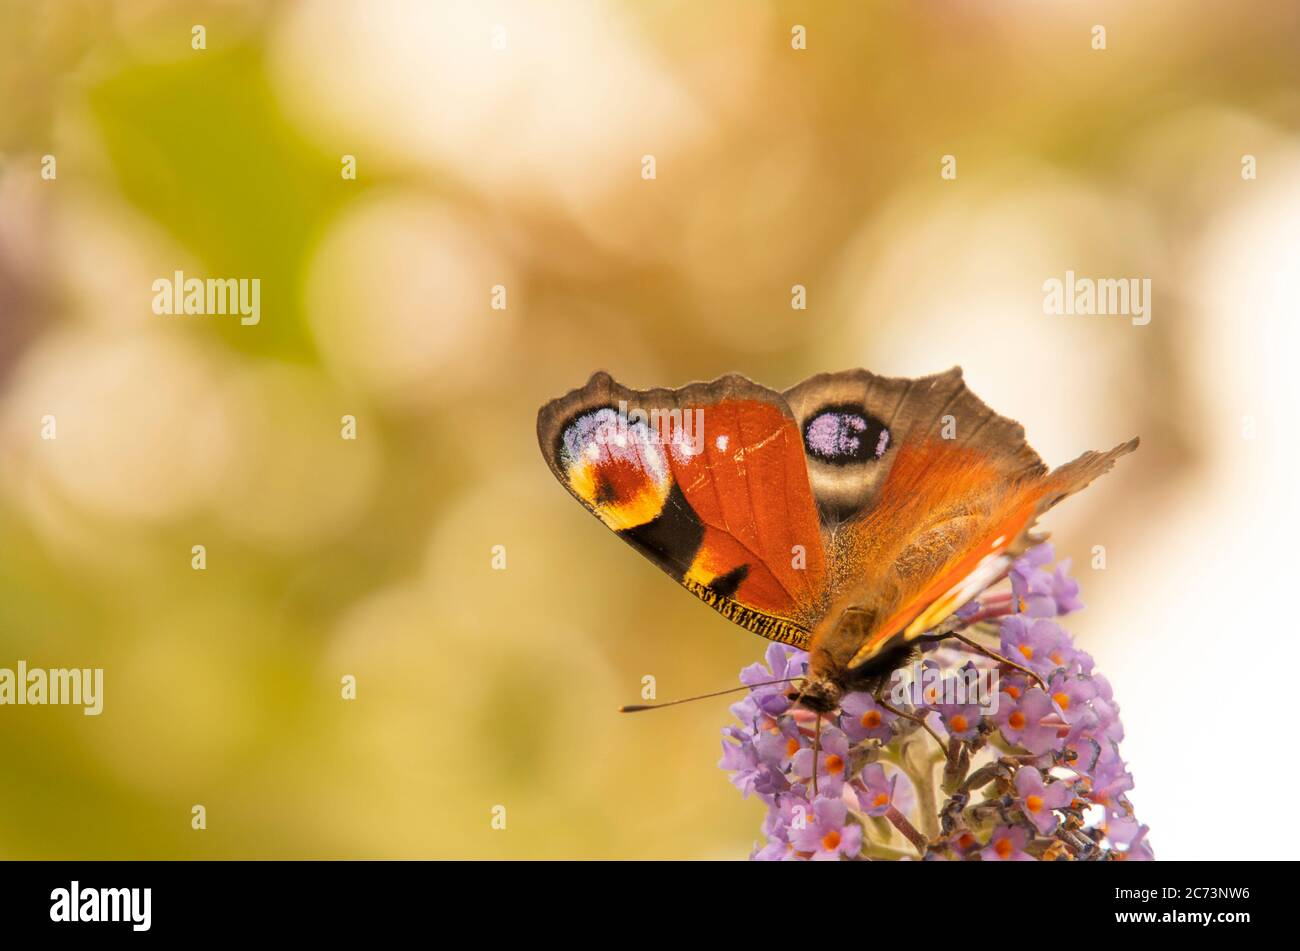 Peacock Butterfly, Aglais io, perched on a purple flower, British Countryside, Bedfordshire, UK Stock Photo